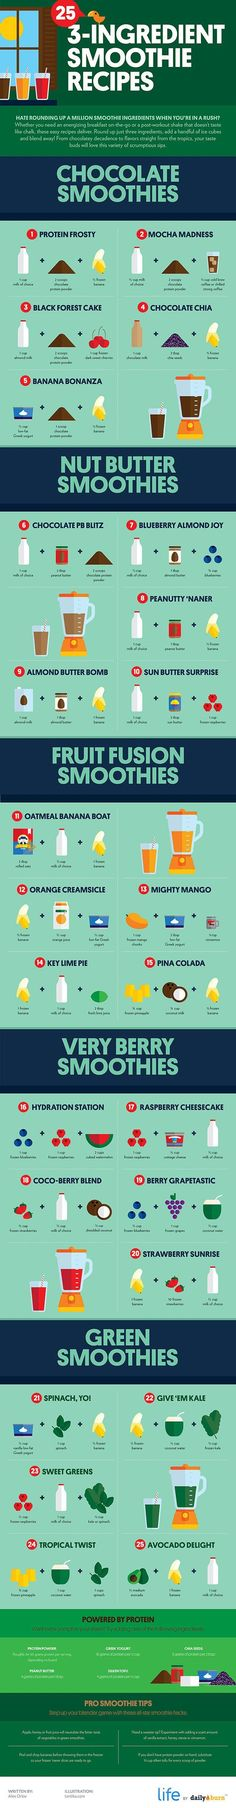 Smoothie ideas